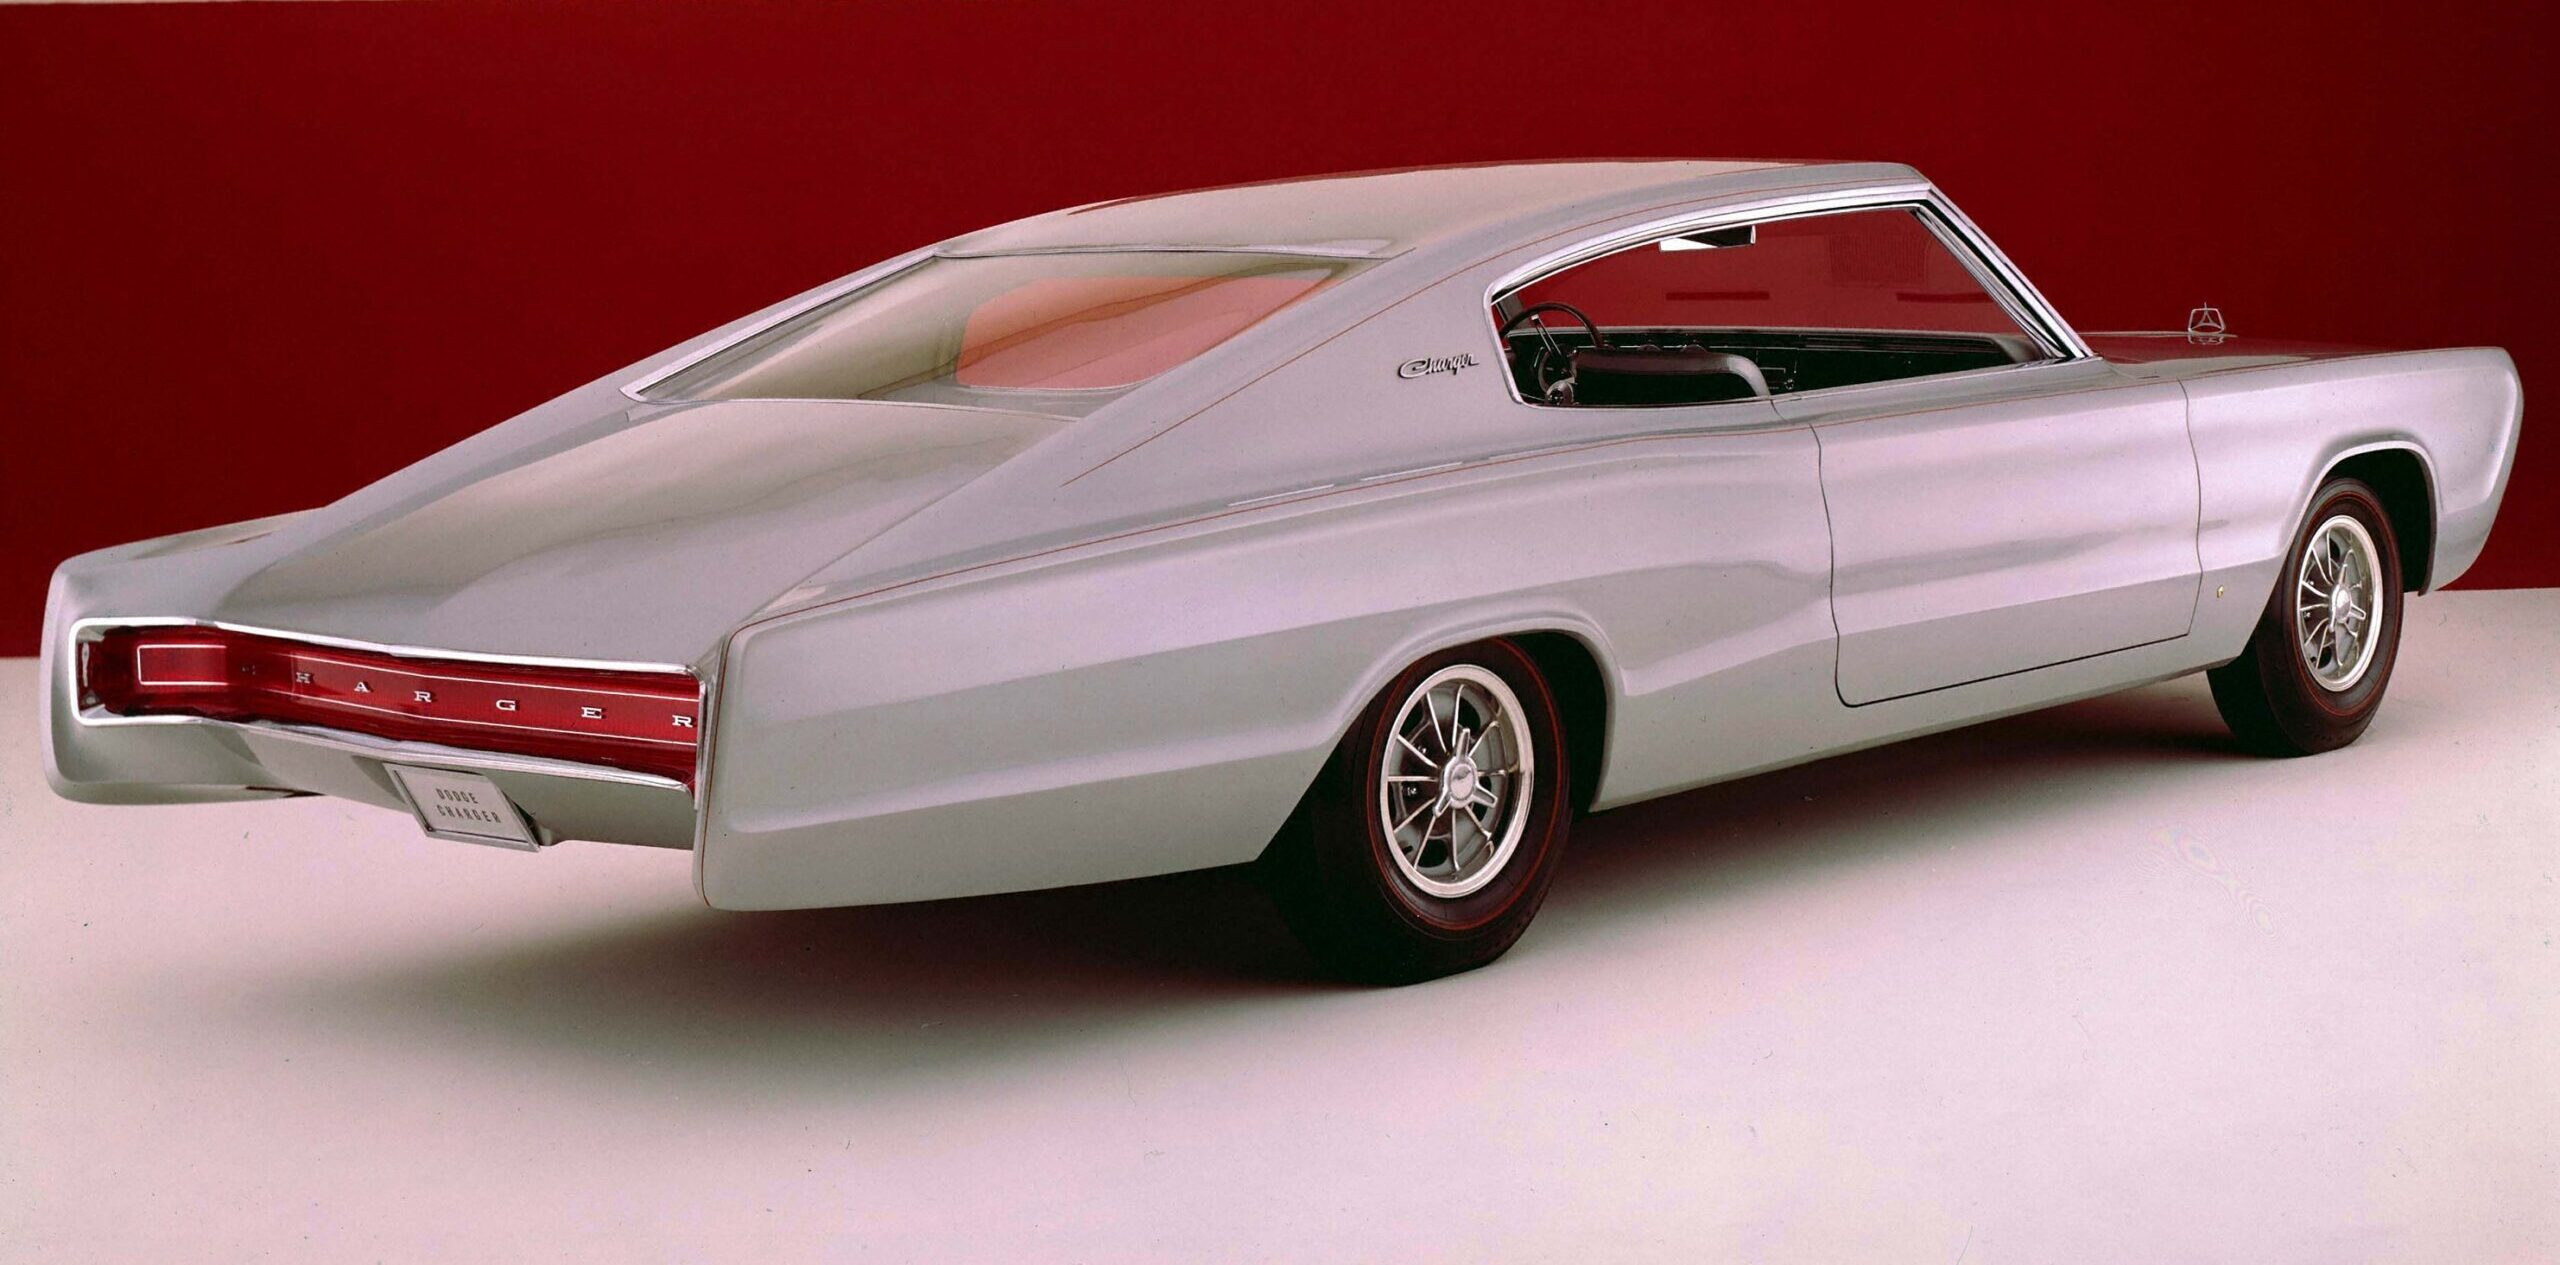 The 1965 Charger concept